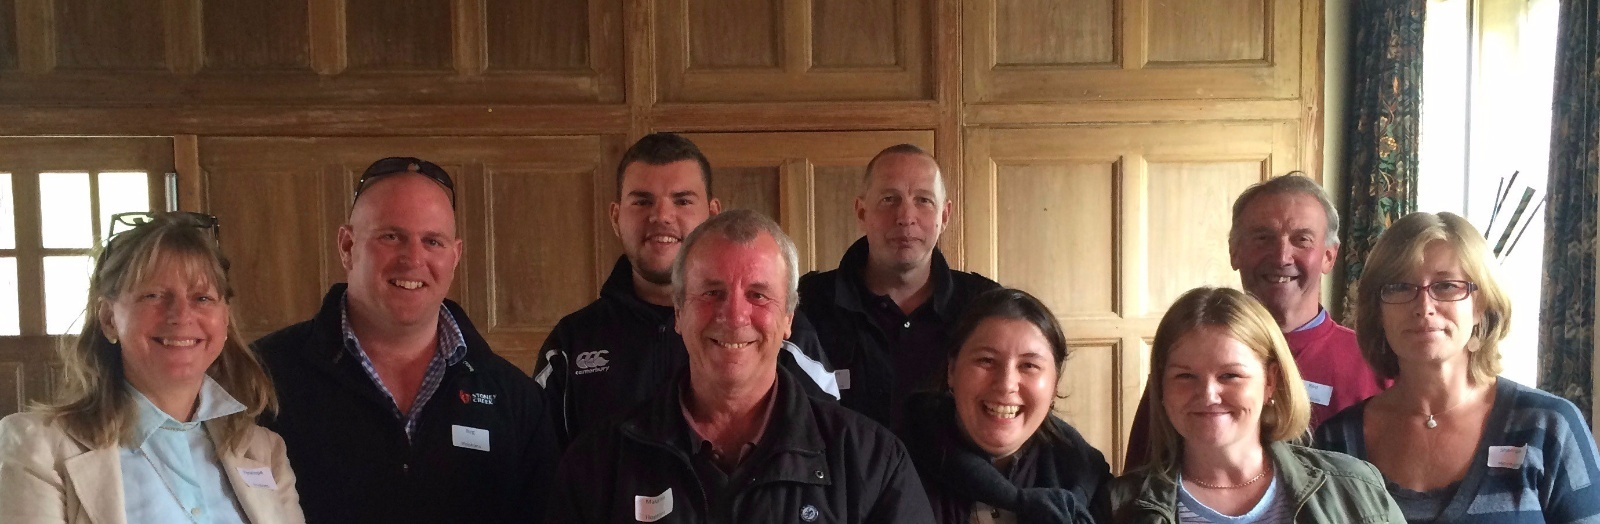 Overbury Enterprises Staff Team -